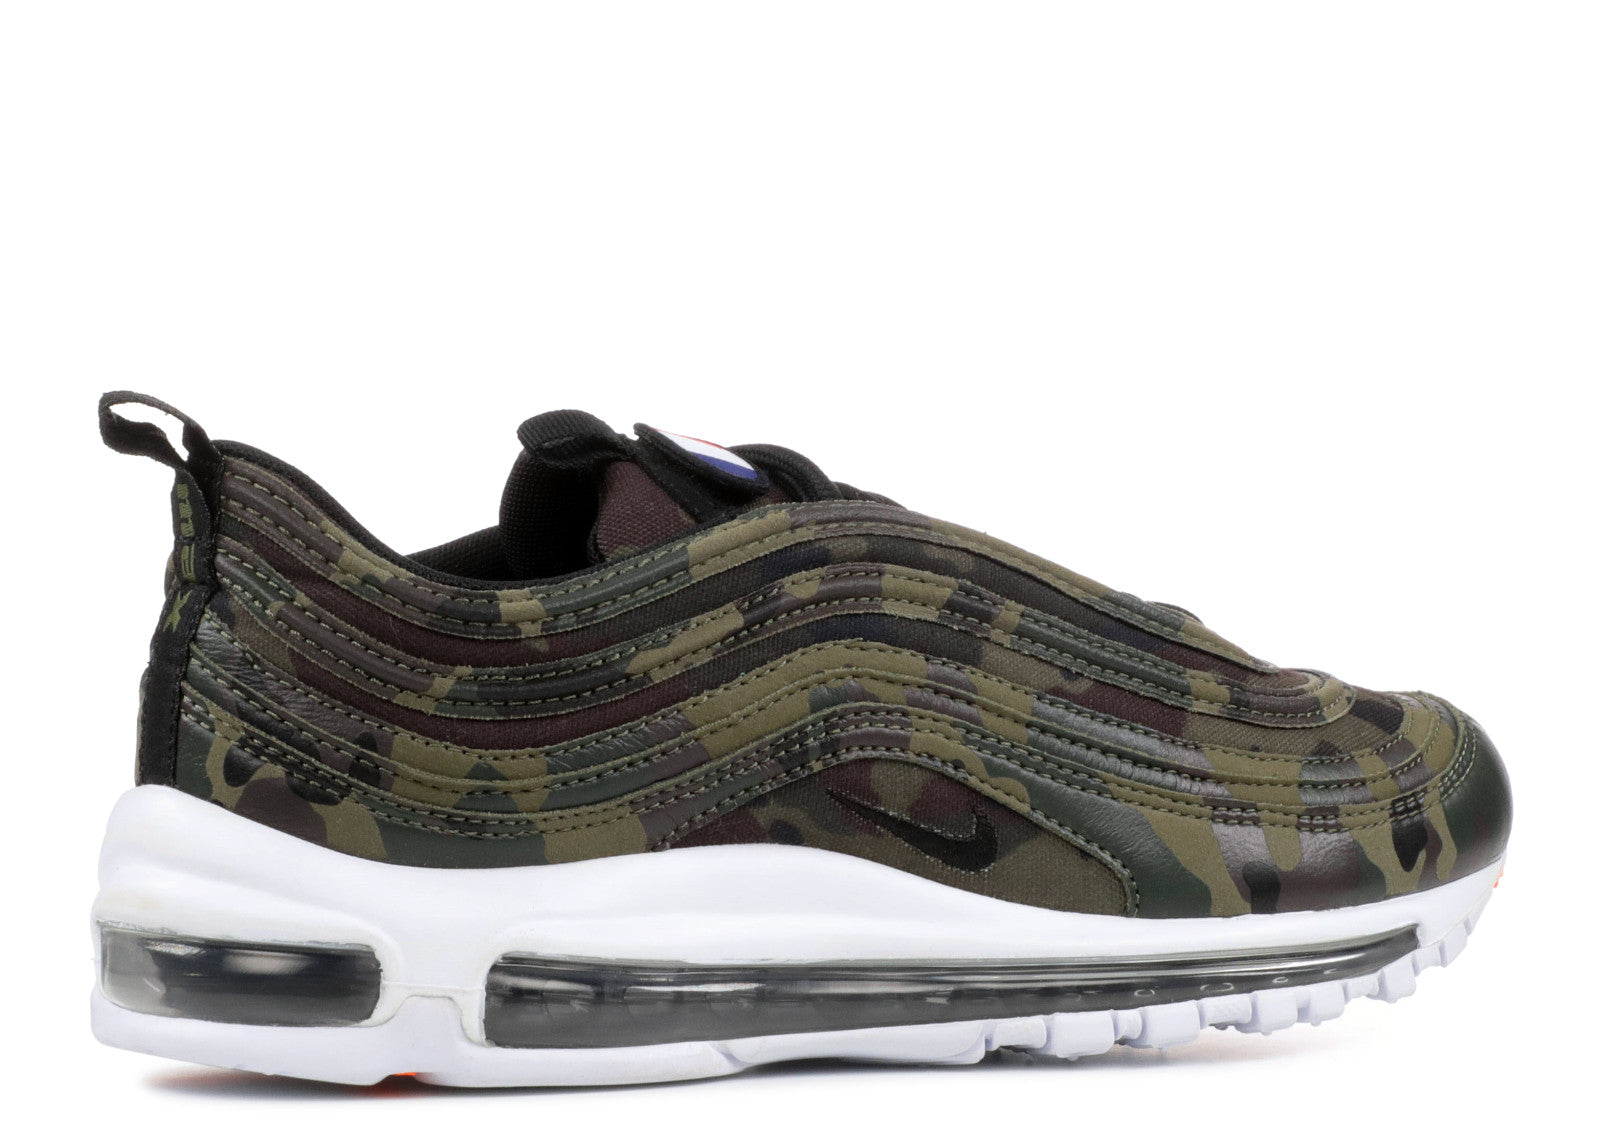 Nike Air Max 97 Premium QS 'Country Camo France'